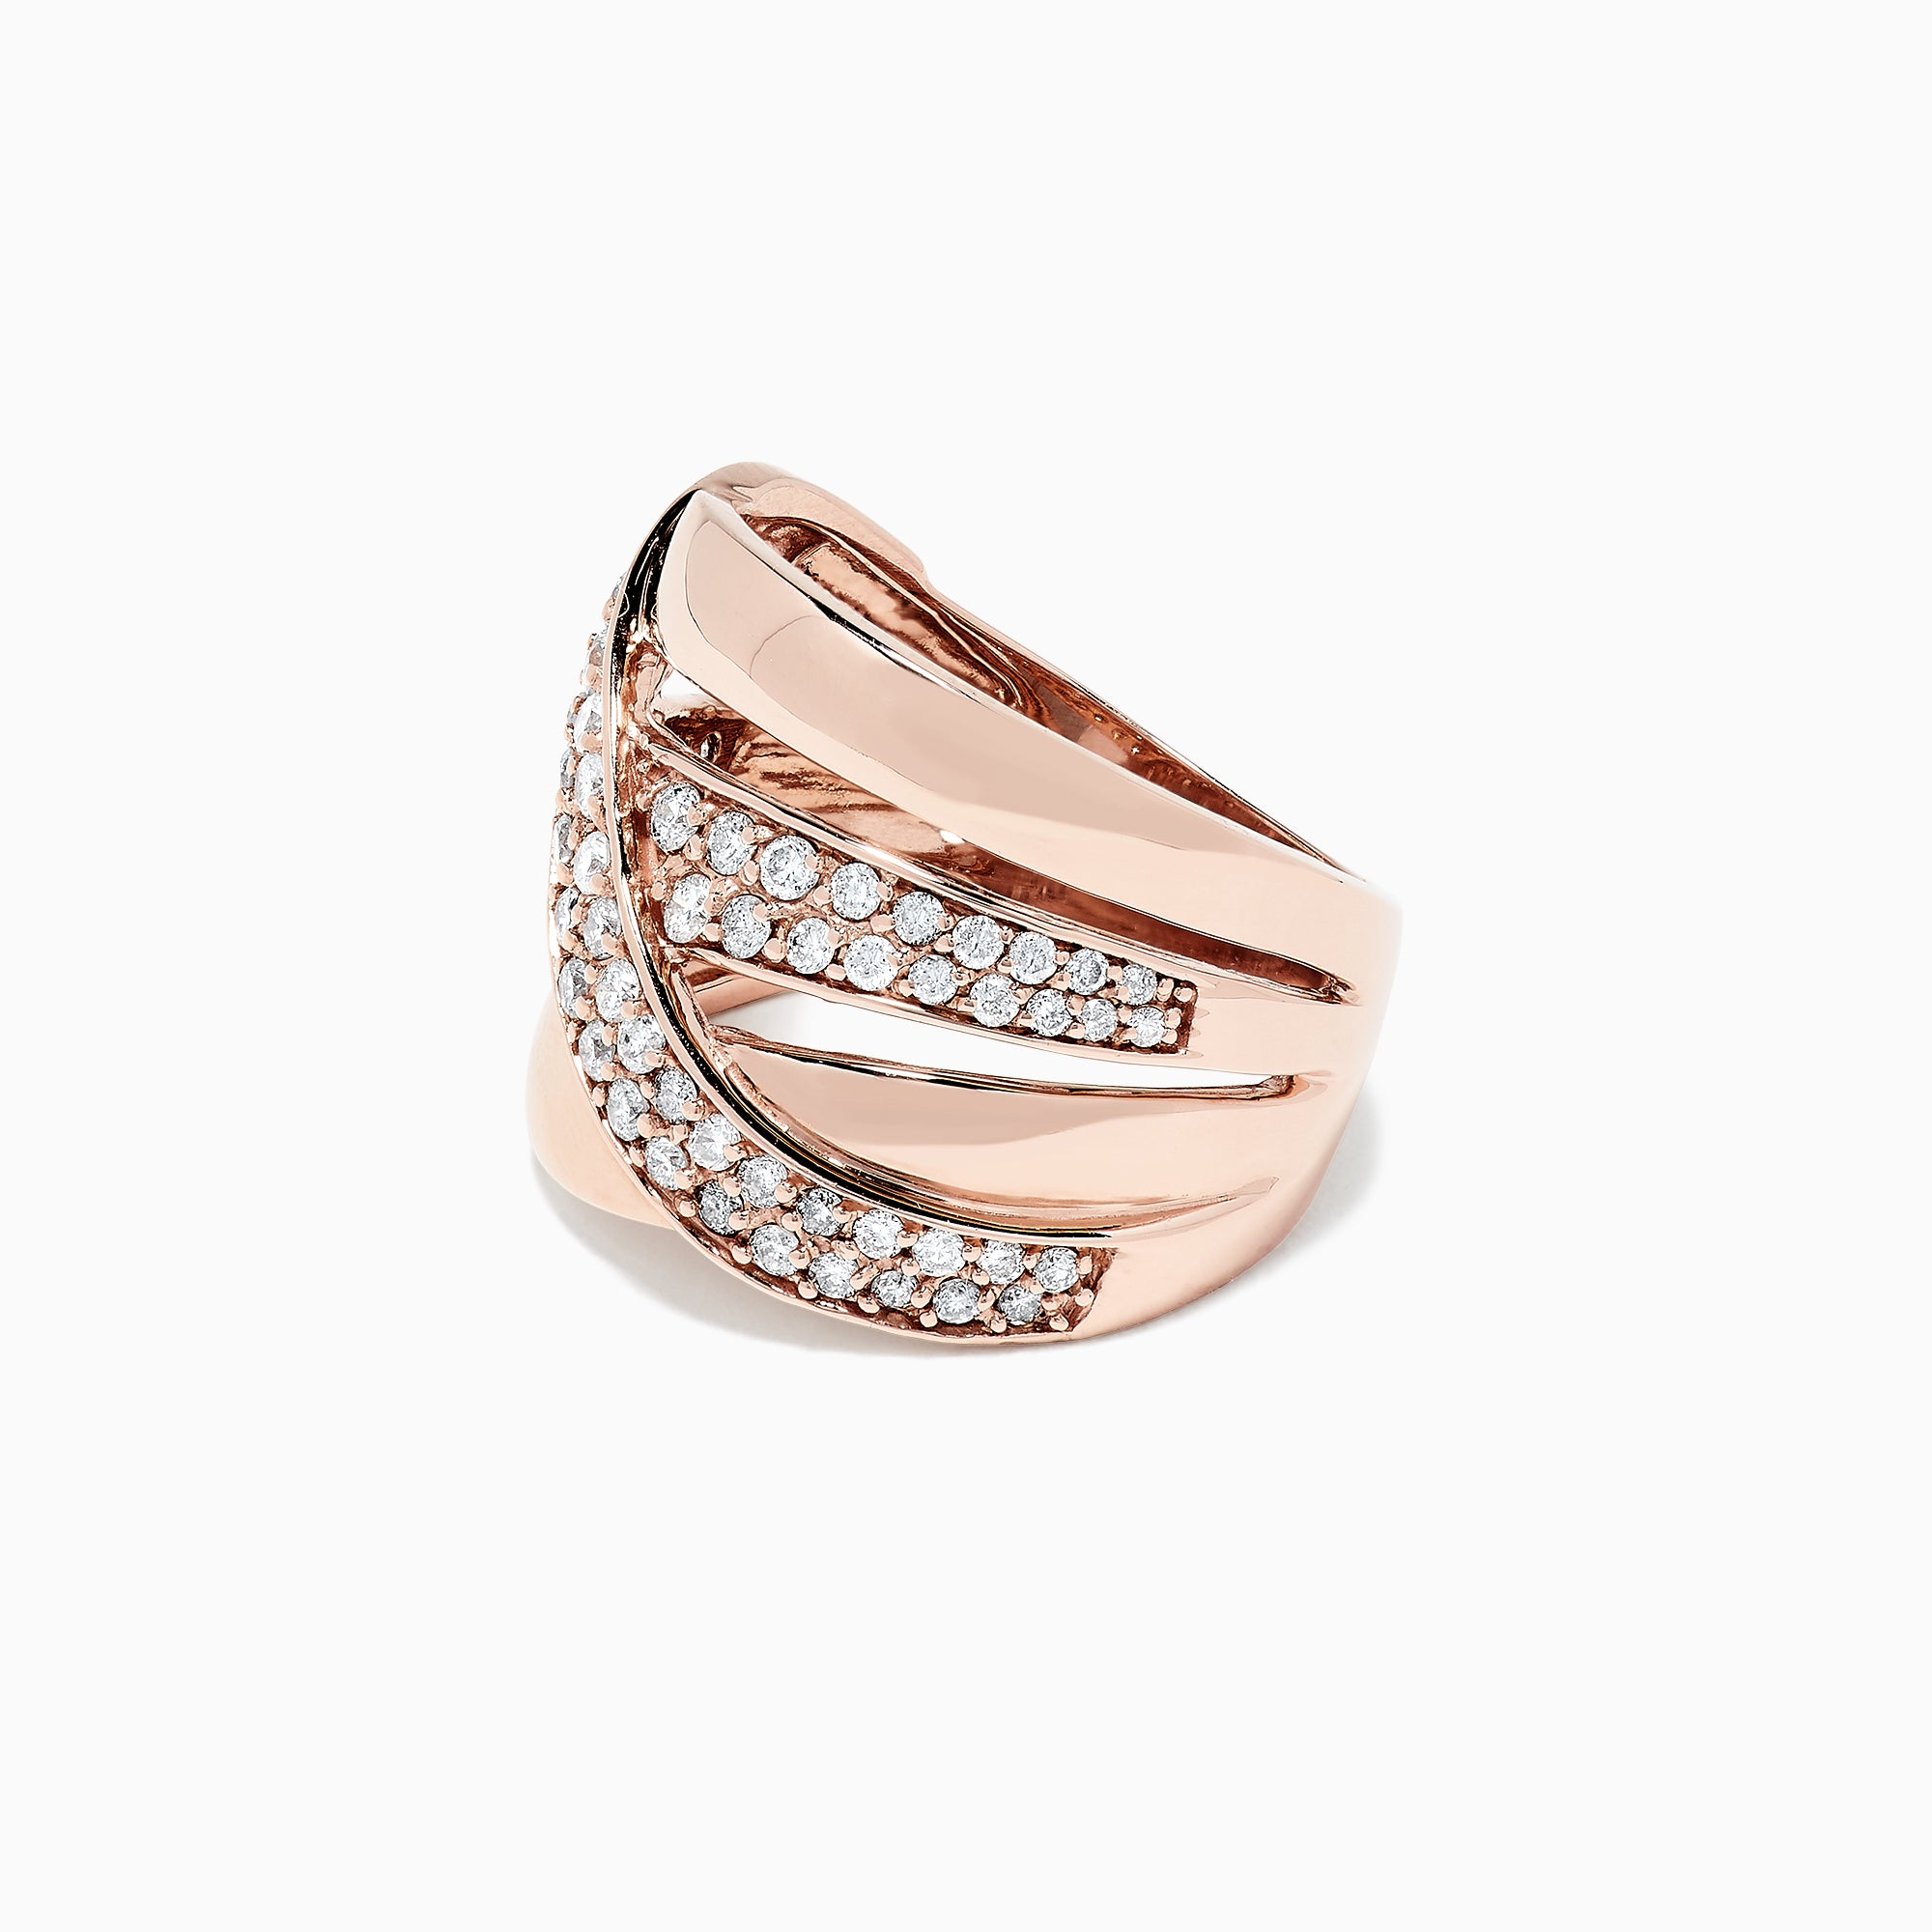 Effy Pave Classica 14K Rose Gold Diamond Ring, 0.93 TCW